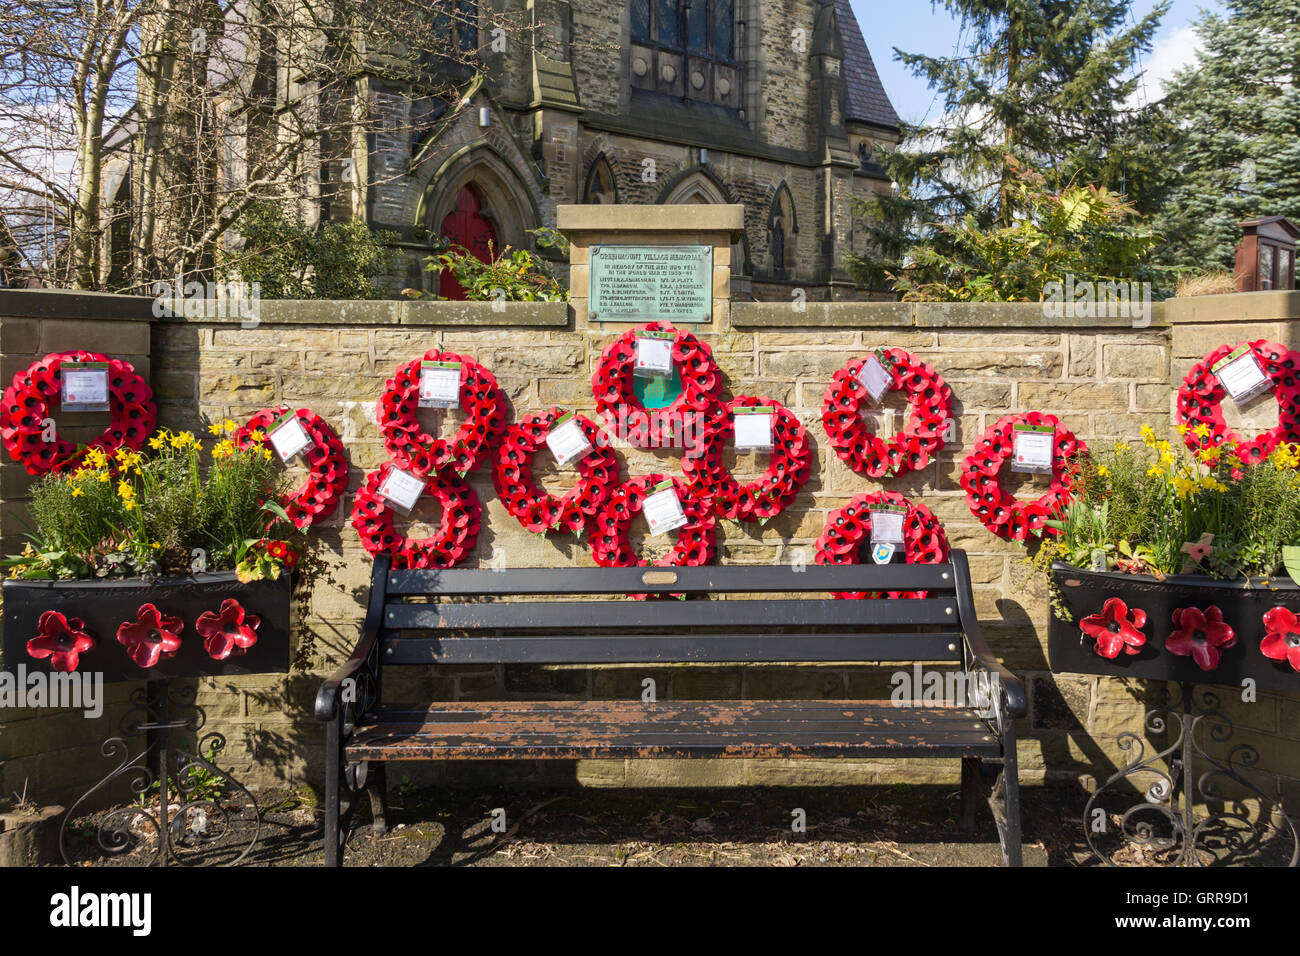 Greenmount Village war memorial with many poppy wreaths, the village remembrance of the twelve men of Greenmount, - Stock Image